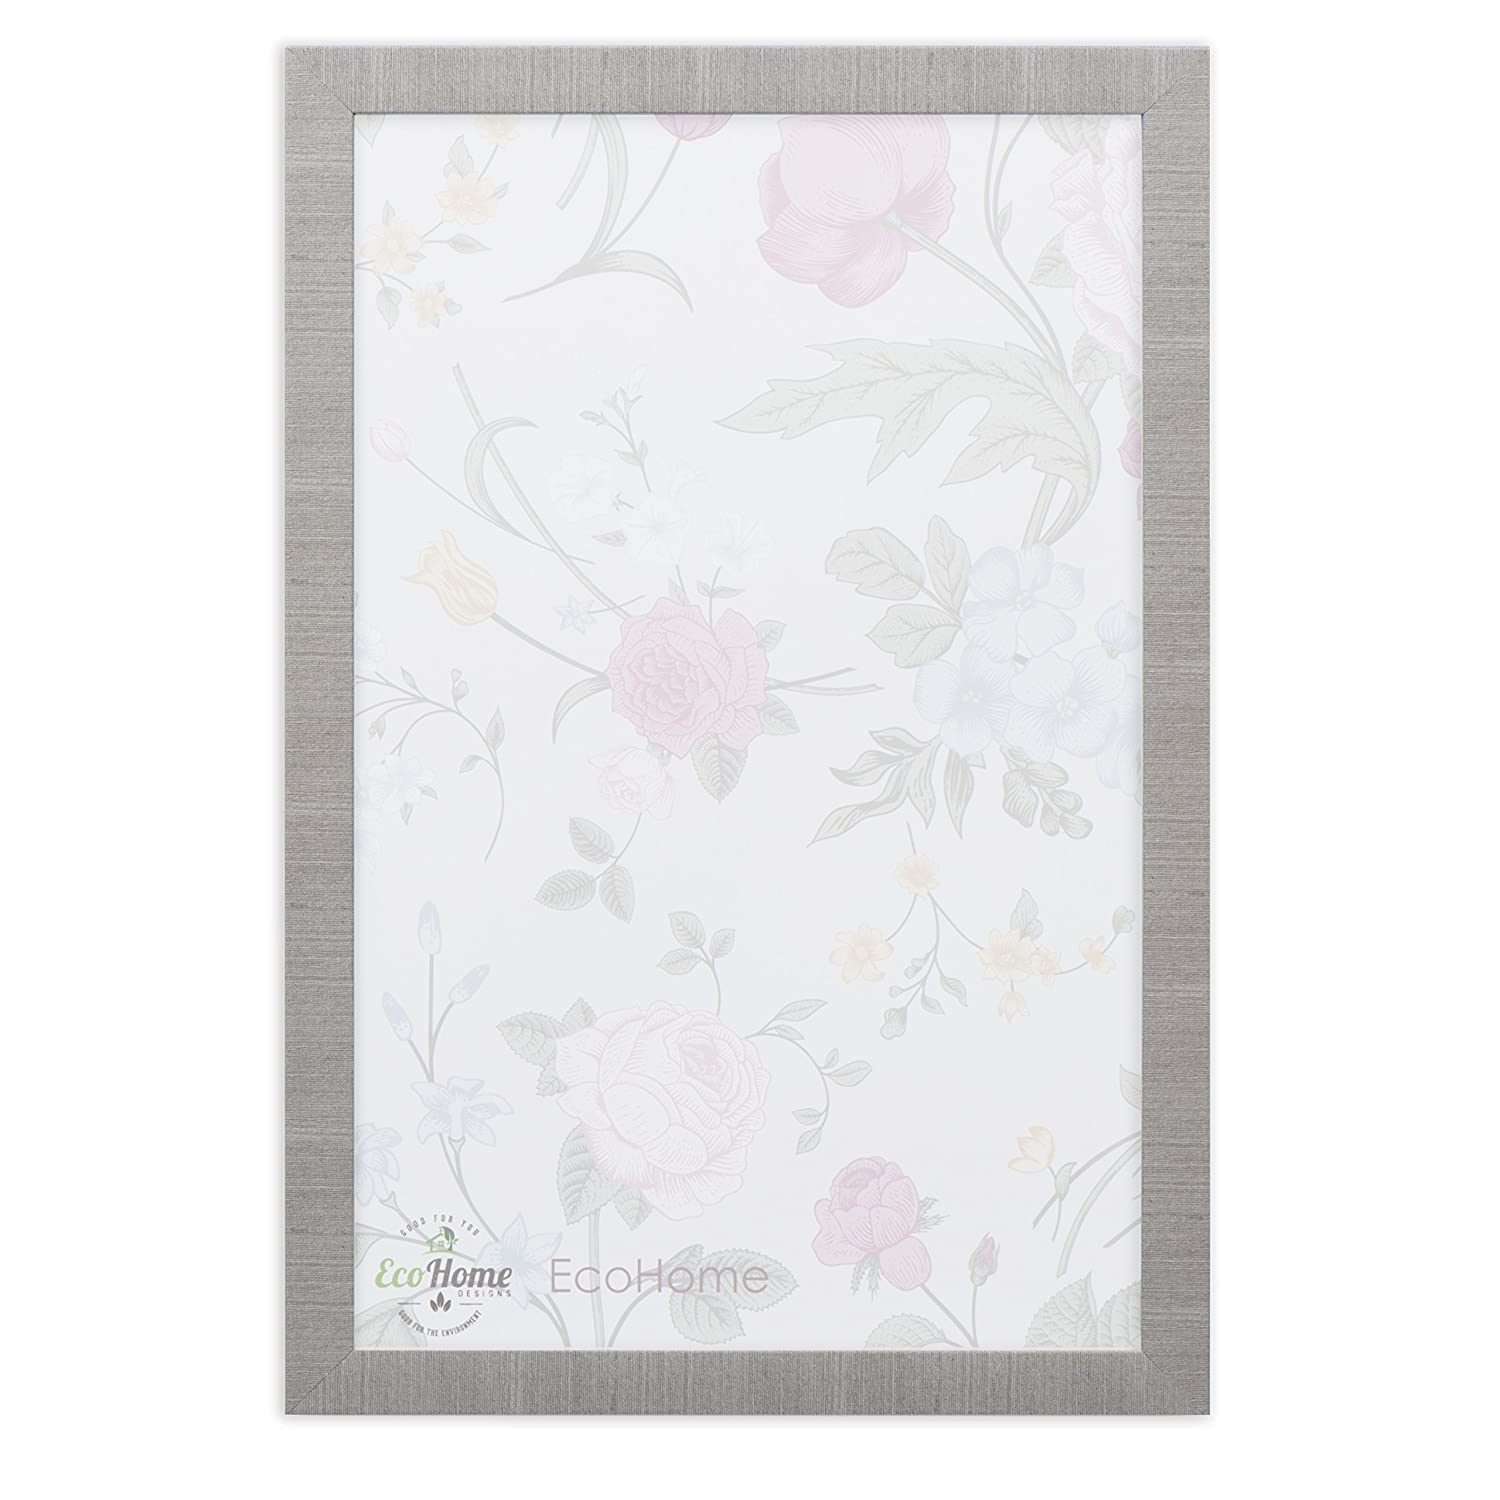 11x14 Picture Frame Modern Gray - Matted to 8x10, Frames by EcoHome